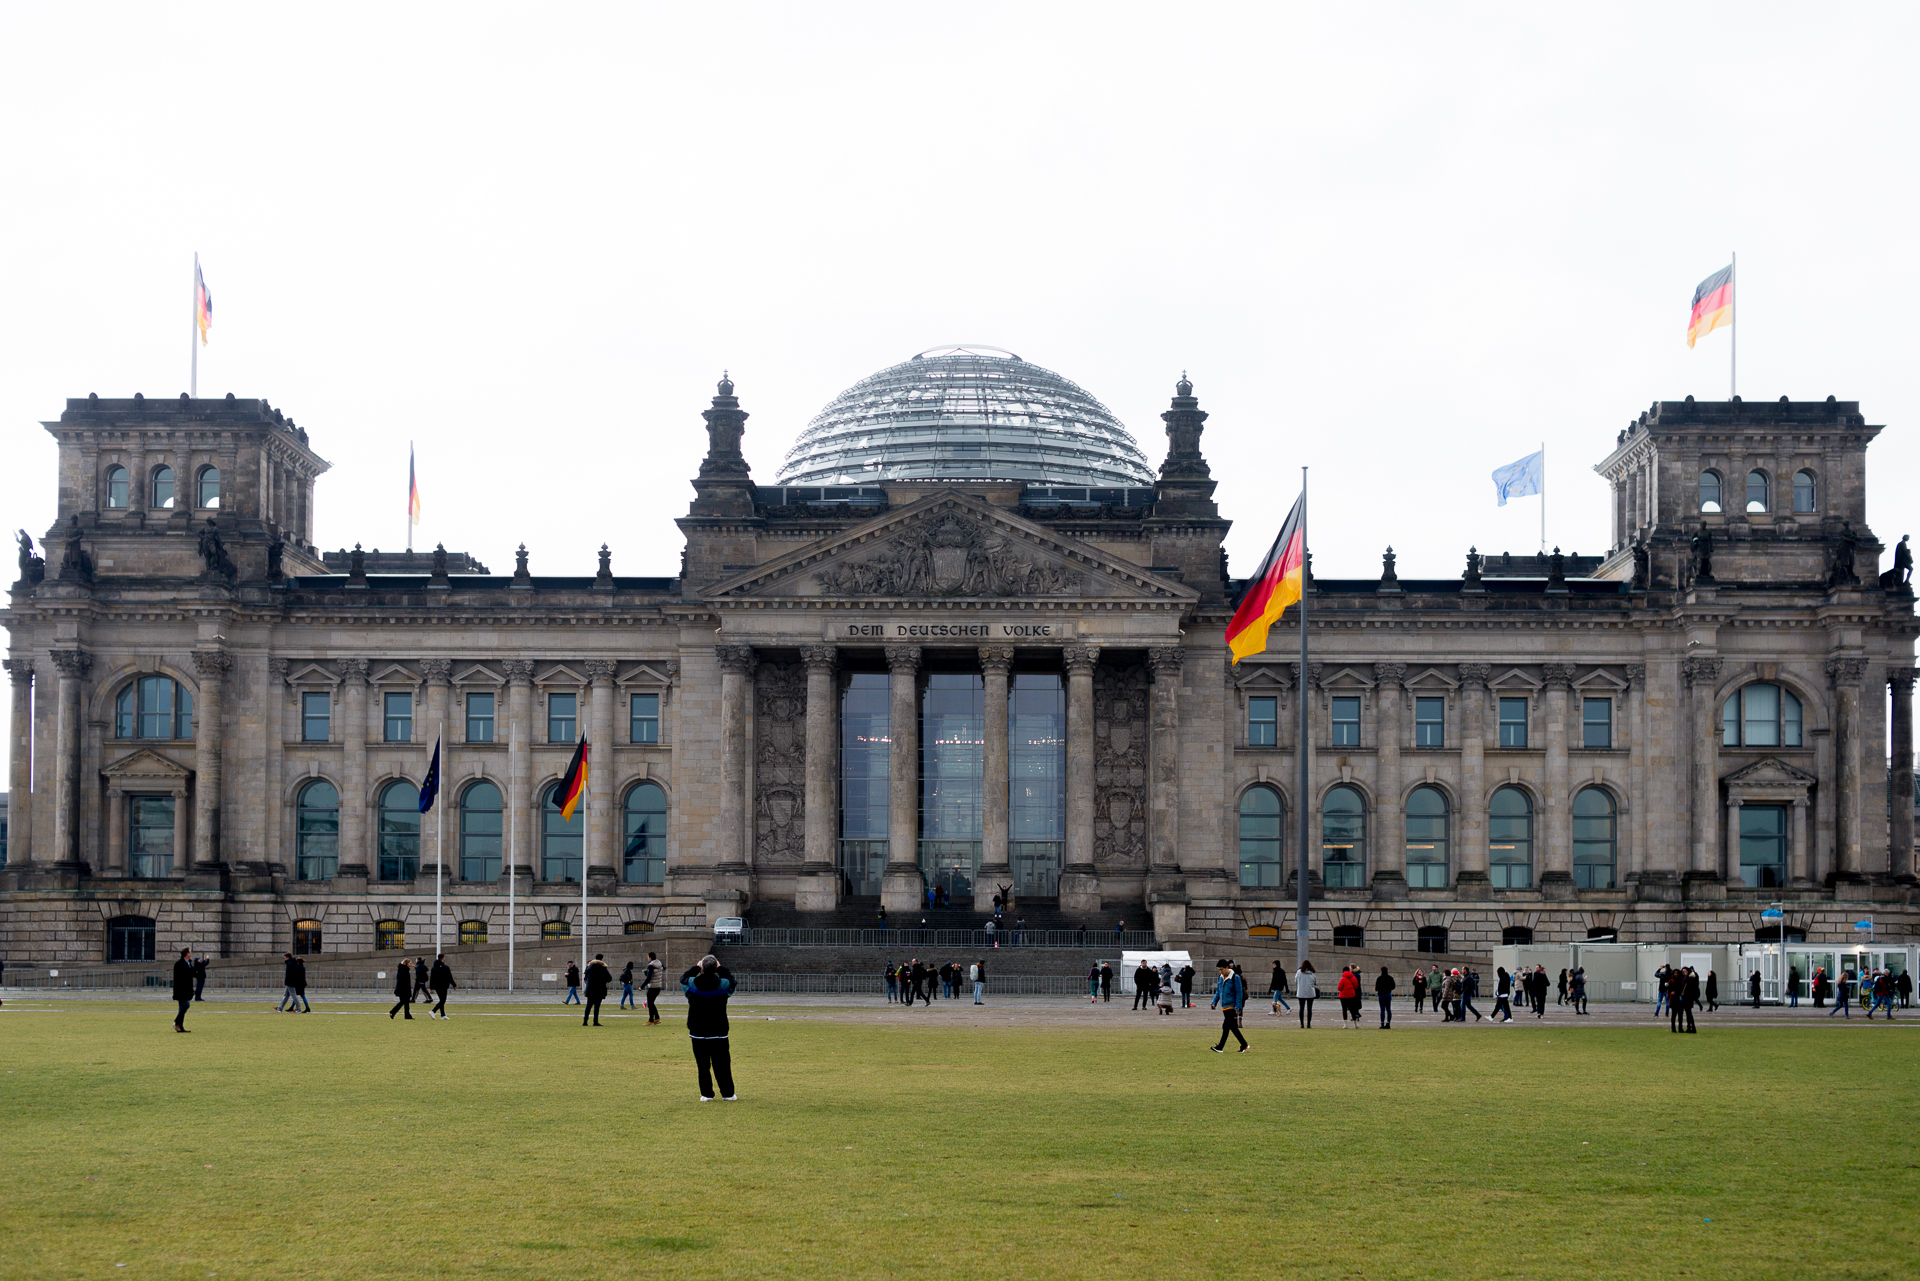 Tourists swarming the green lawns in front of the German Bundestag in Berlin, Germany